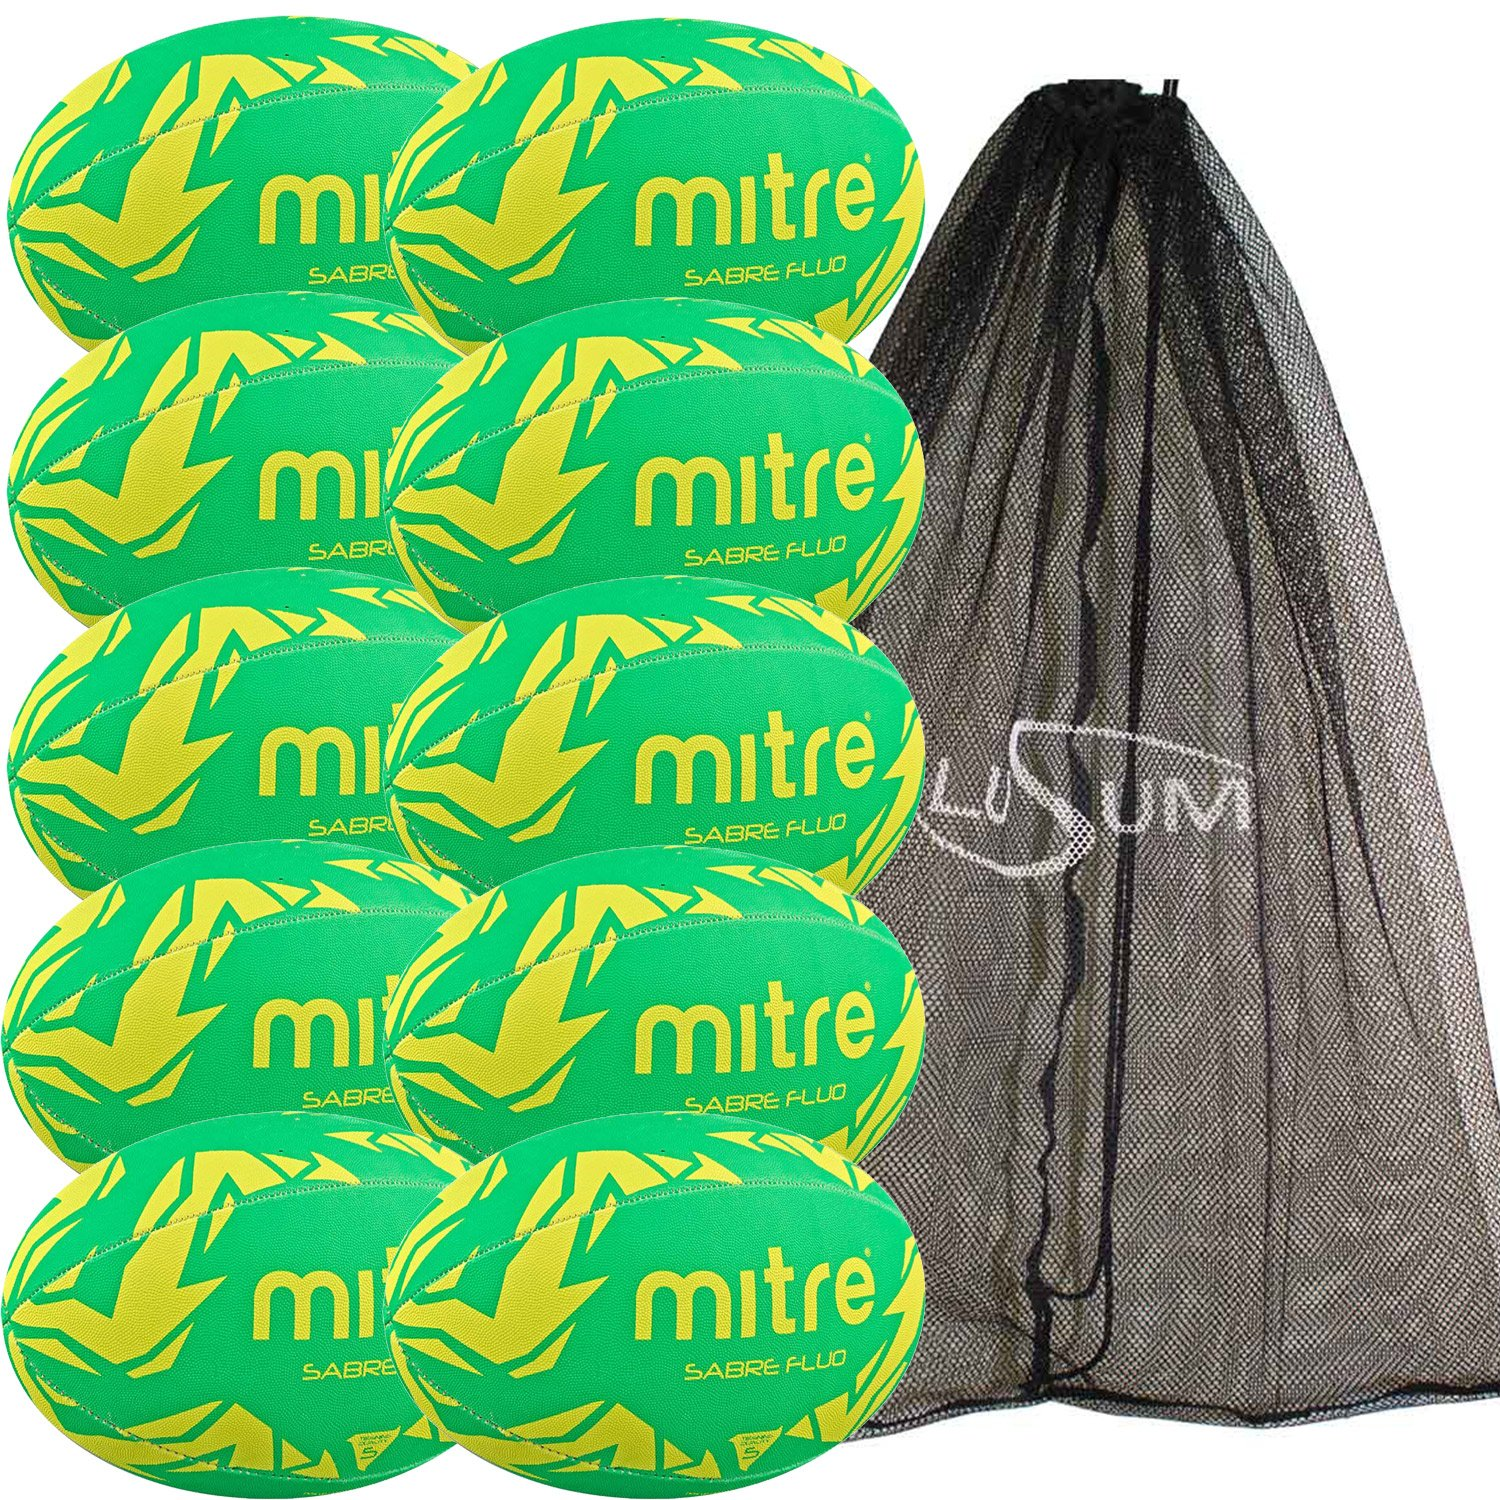 10 x Mitre Sabre Training Rugby Balls plus a Lusum Mesh Bag Size 5) Big Game Hunters